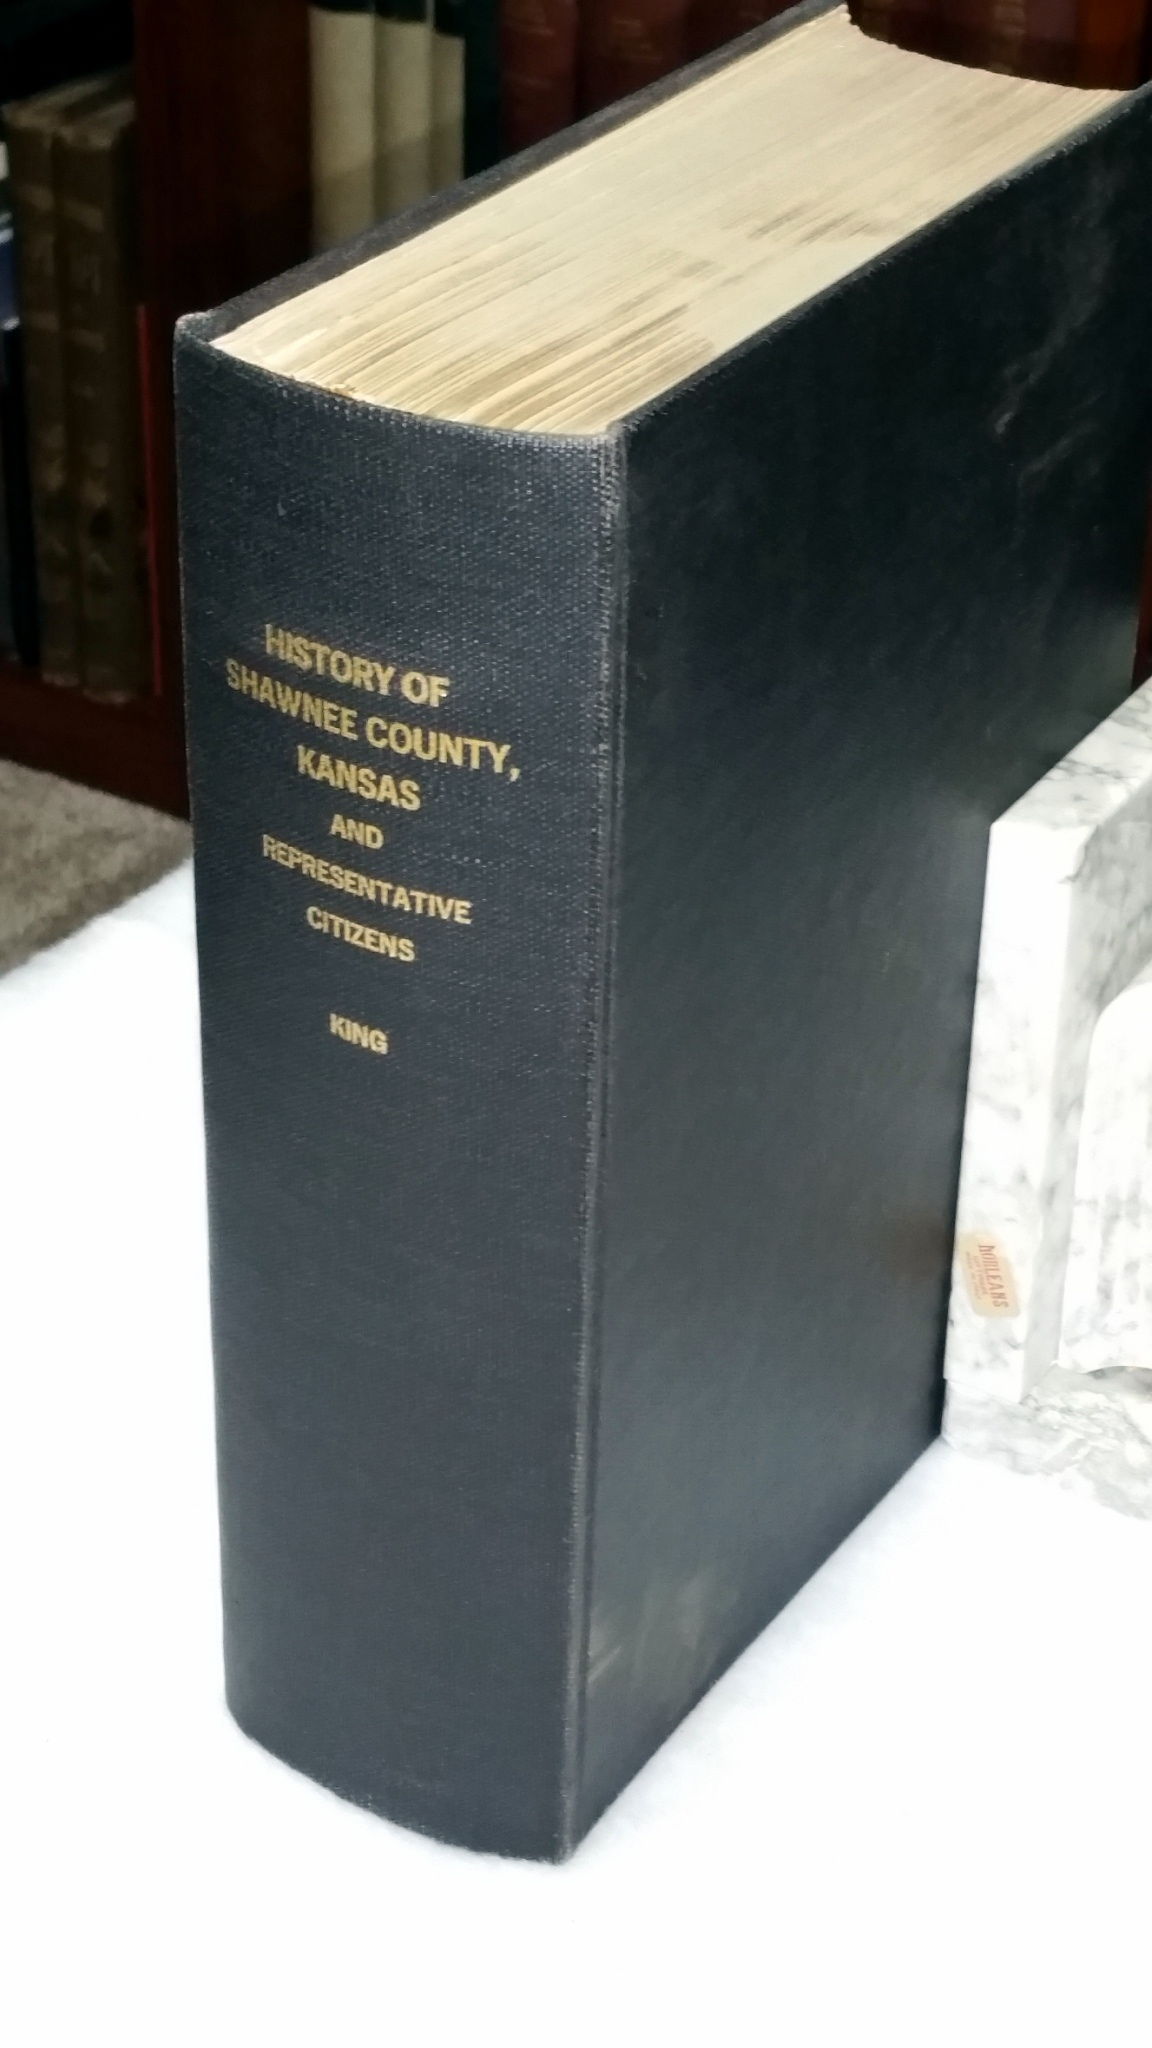 History of Shawnee County, Kansas and Representative Citizens